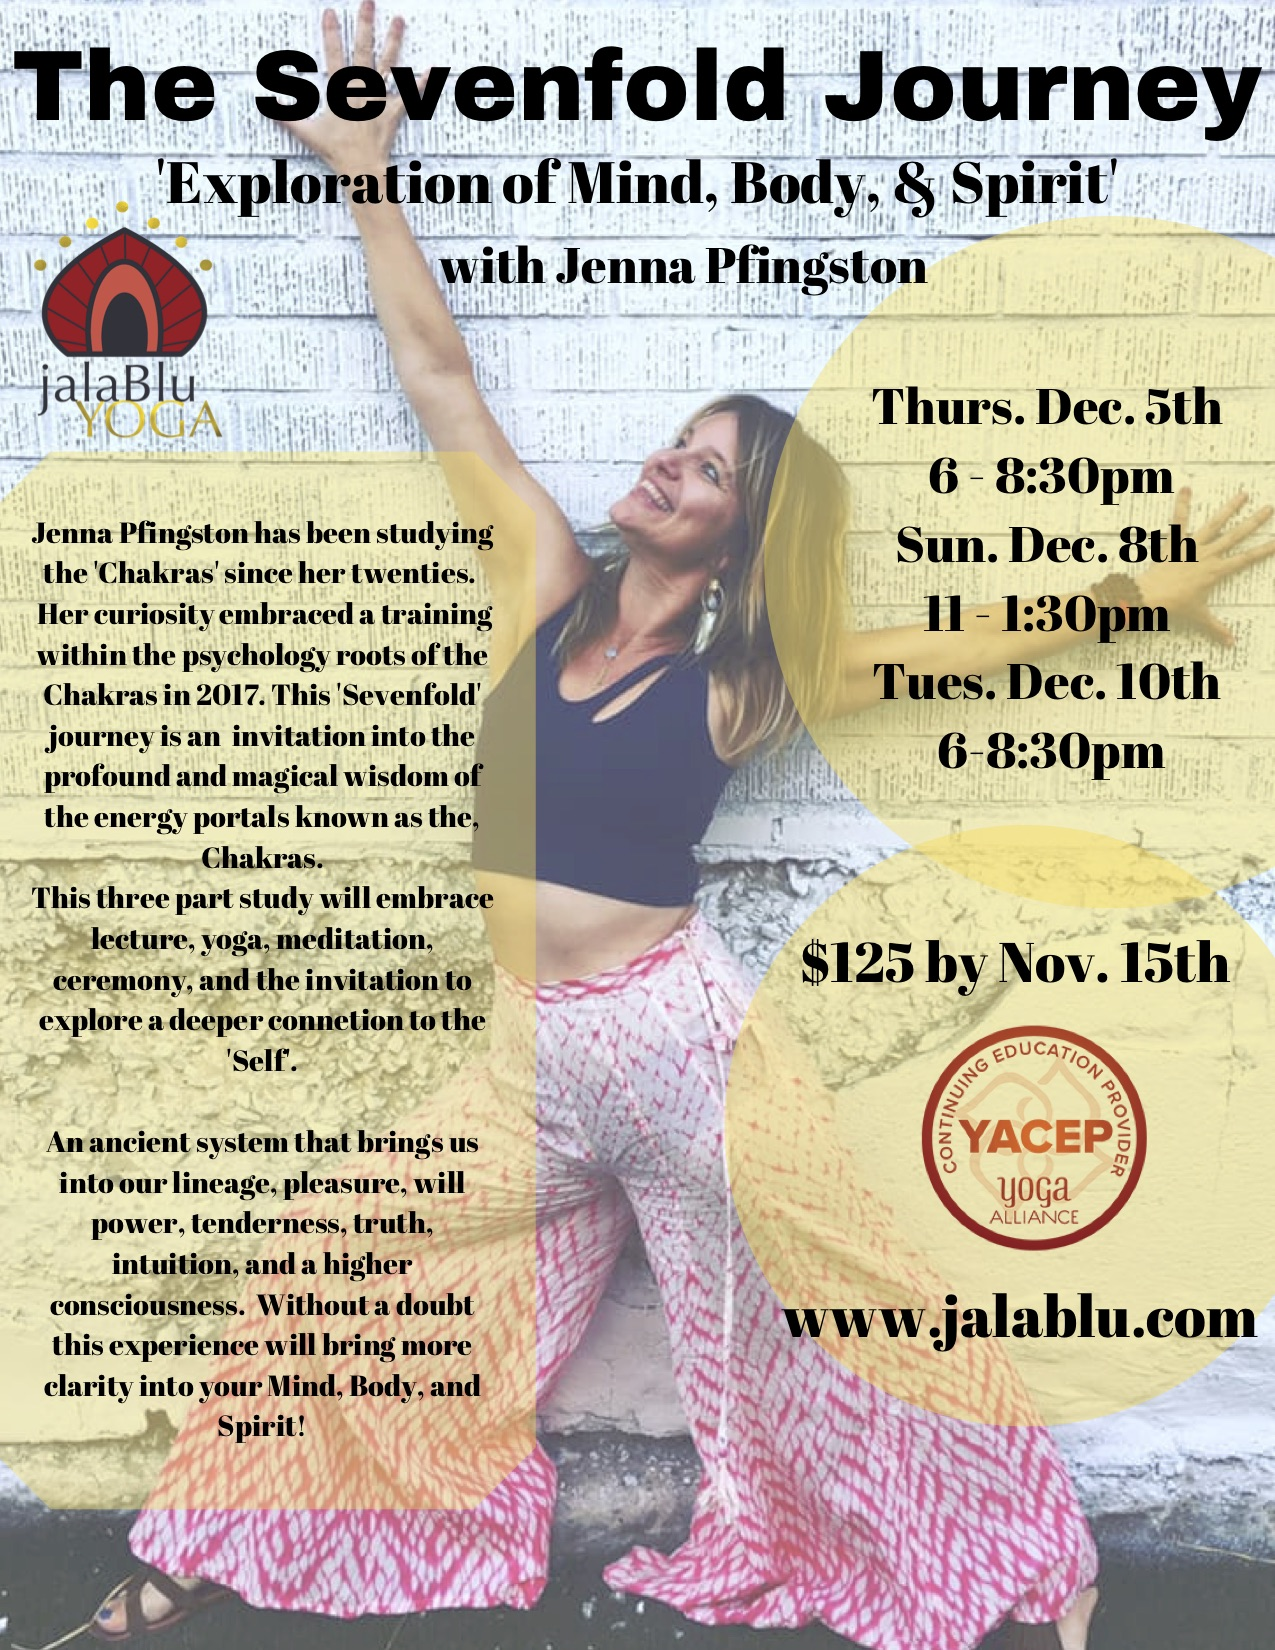 Whether you know about the Main Energy Portals (Chakras) in the body (not just the physical body) or you are NEW to the journey this will be a potent and profound journey that will rest in your soul for the rest of your human experience!  Series Includes  Yoga Meditation Mantra Mudra  Ceremony with Fire, Scents of Clearing, Ceremonial Tea, and MORE!